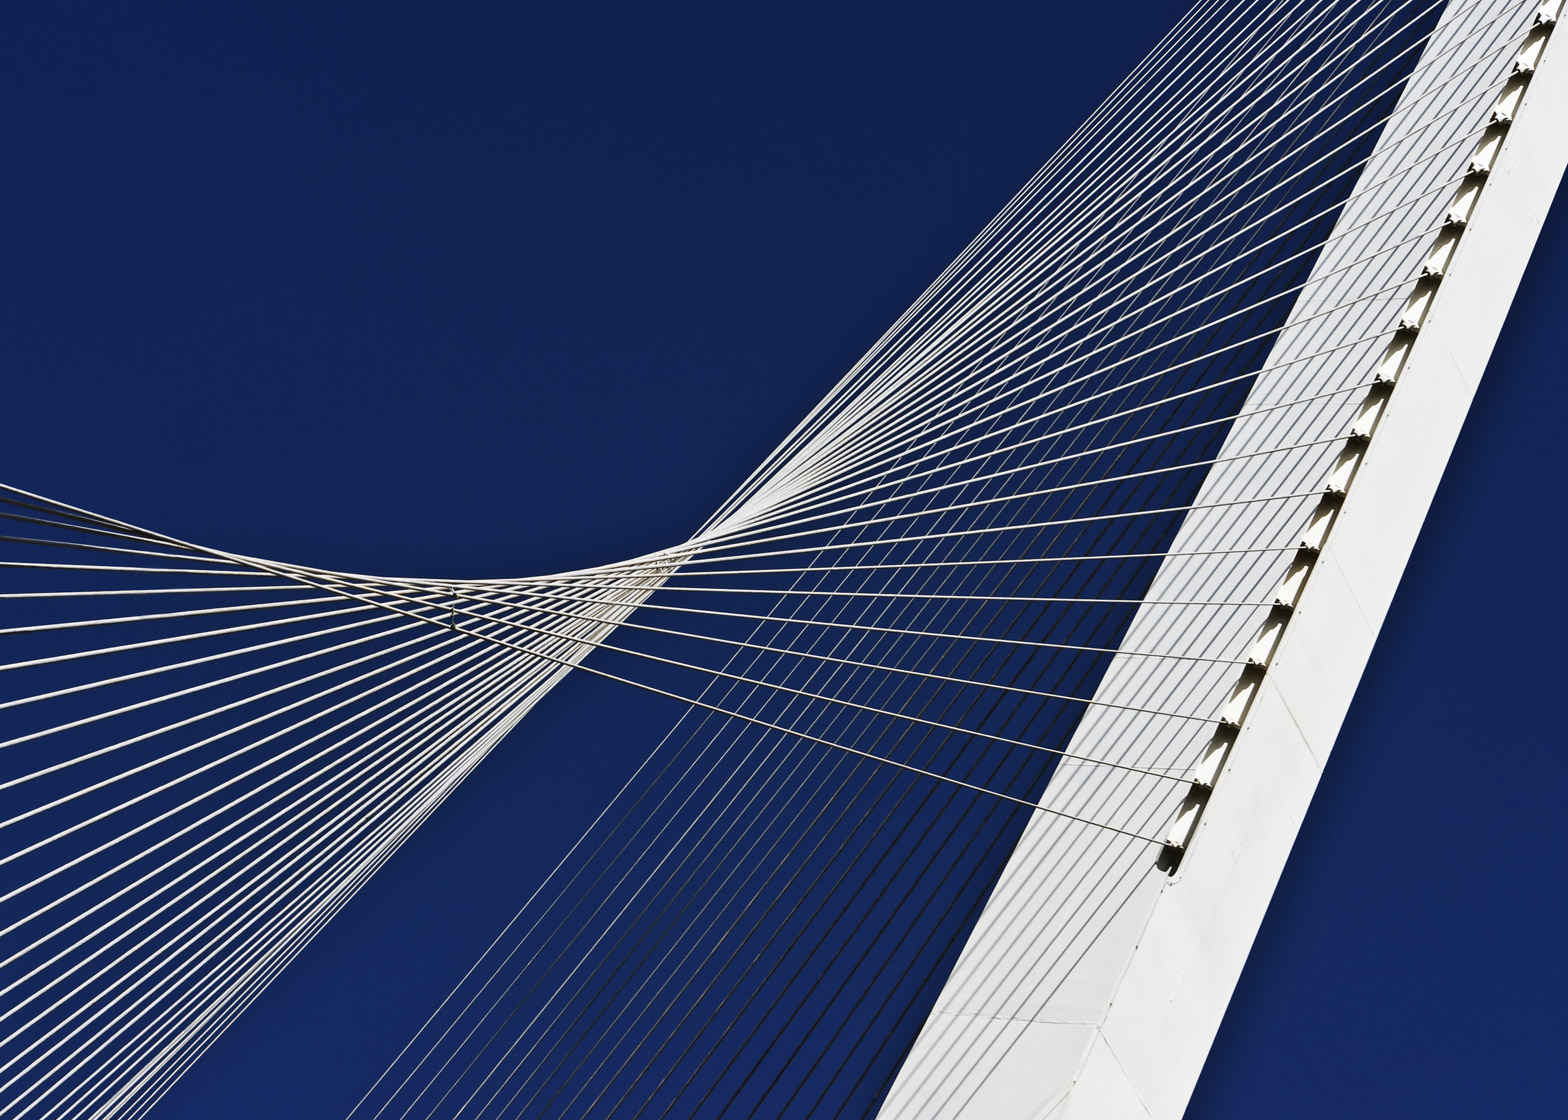 Chords Bridge by Santiago Calatrava